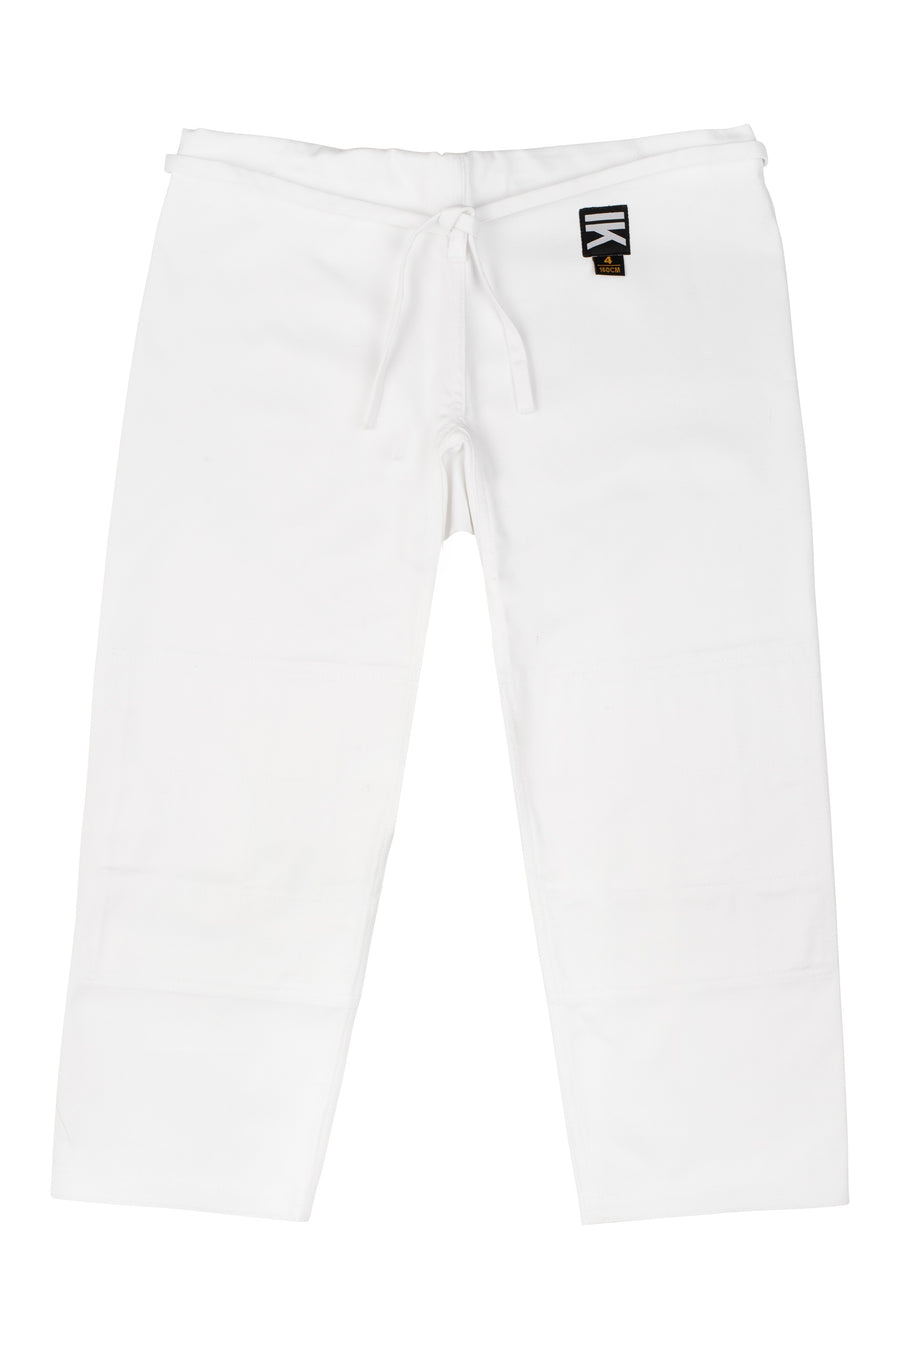 Shoshin K-650 Premium Heavyweight Single Weave Judo Gi | Japanese Slim Fit